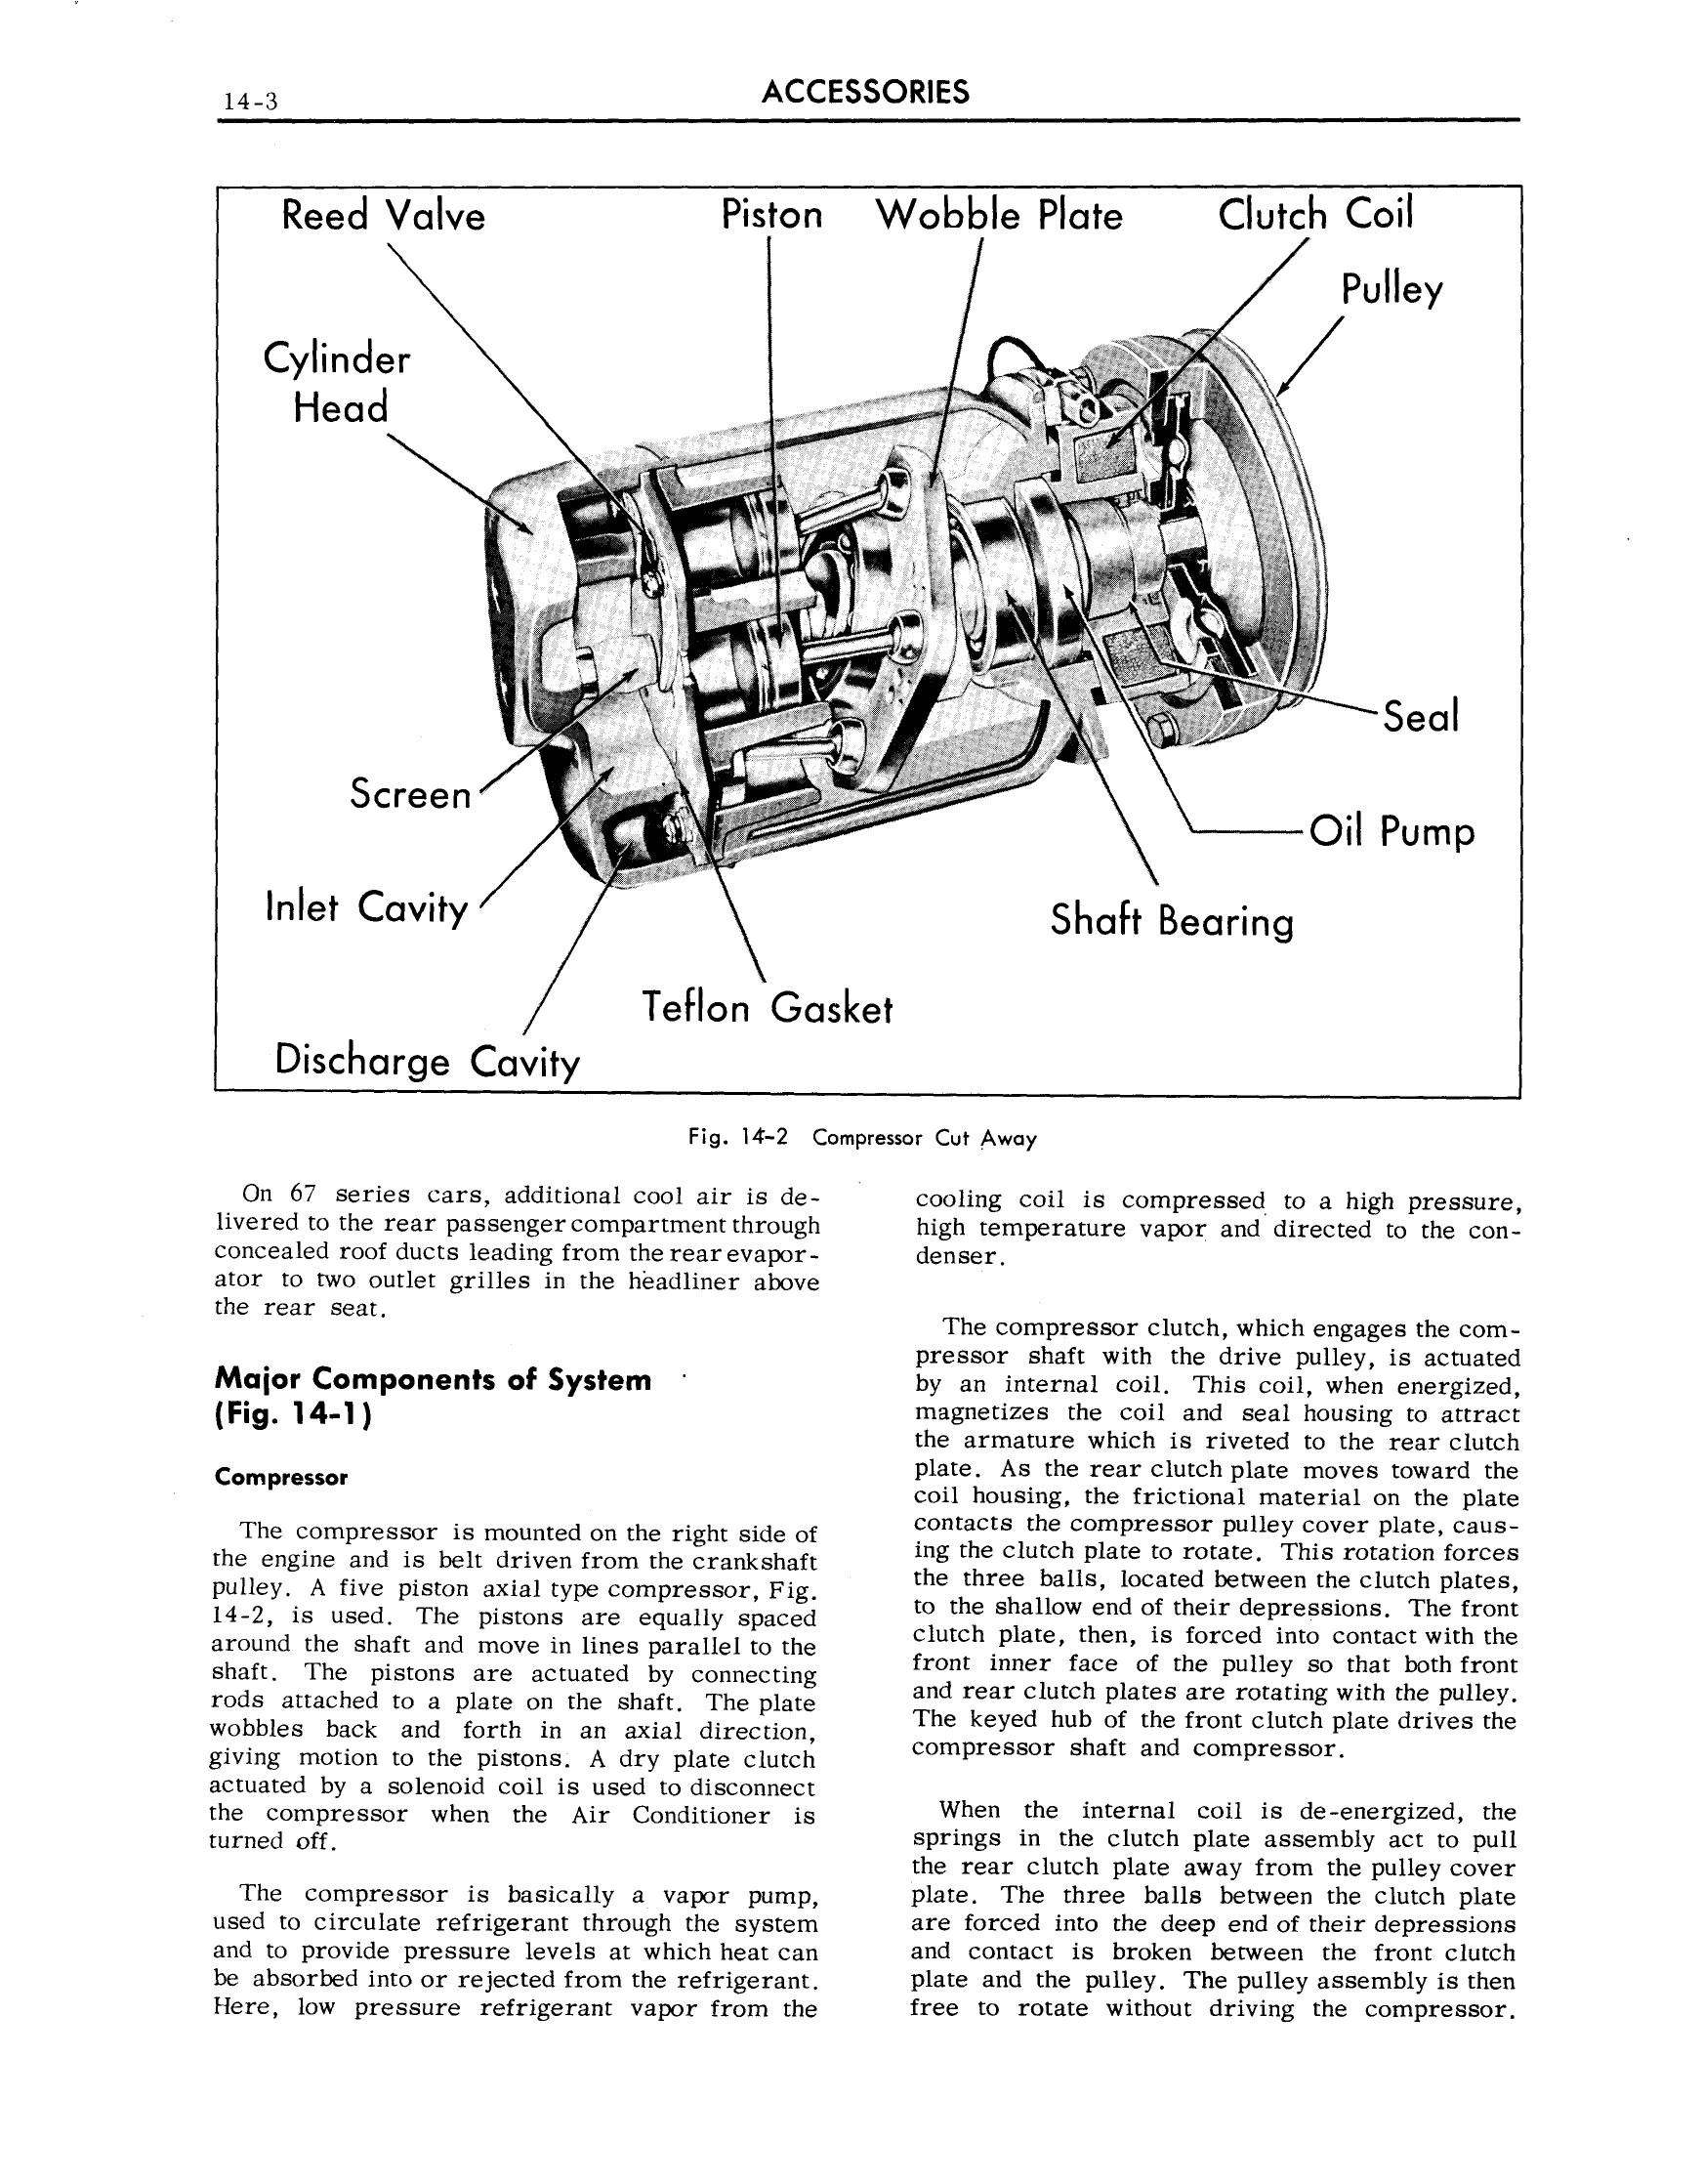 1959 Cadillac Shop Manual- Accessories Page 3 of 58